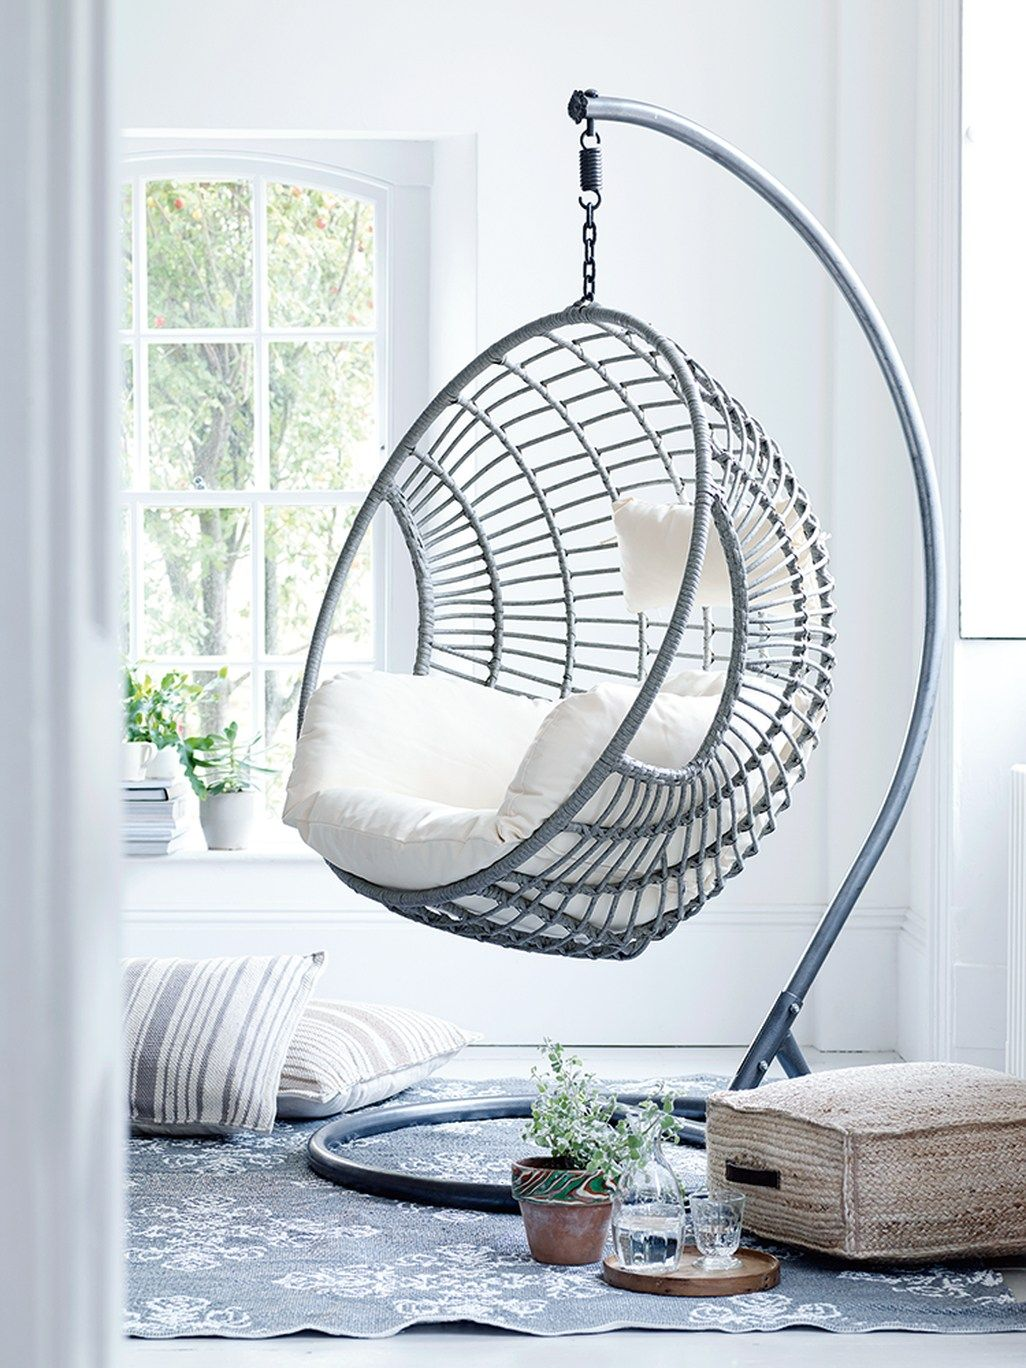 45 Modern Hanging Swing Chair Stand Indoor Decor Inspirational Pin Hanging Chair Outdoor Hanging Chair Indoor Hanging Swing Chair